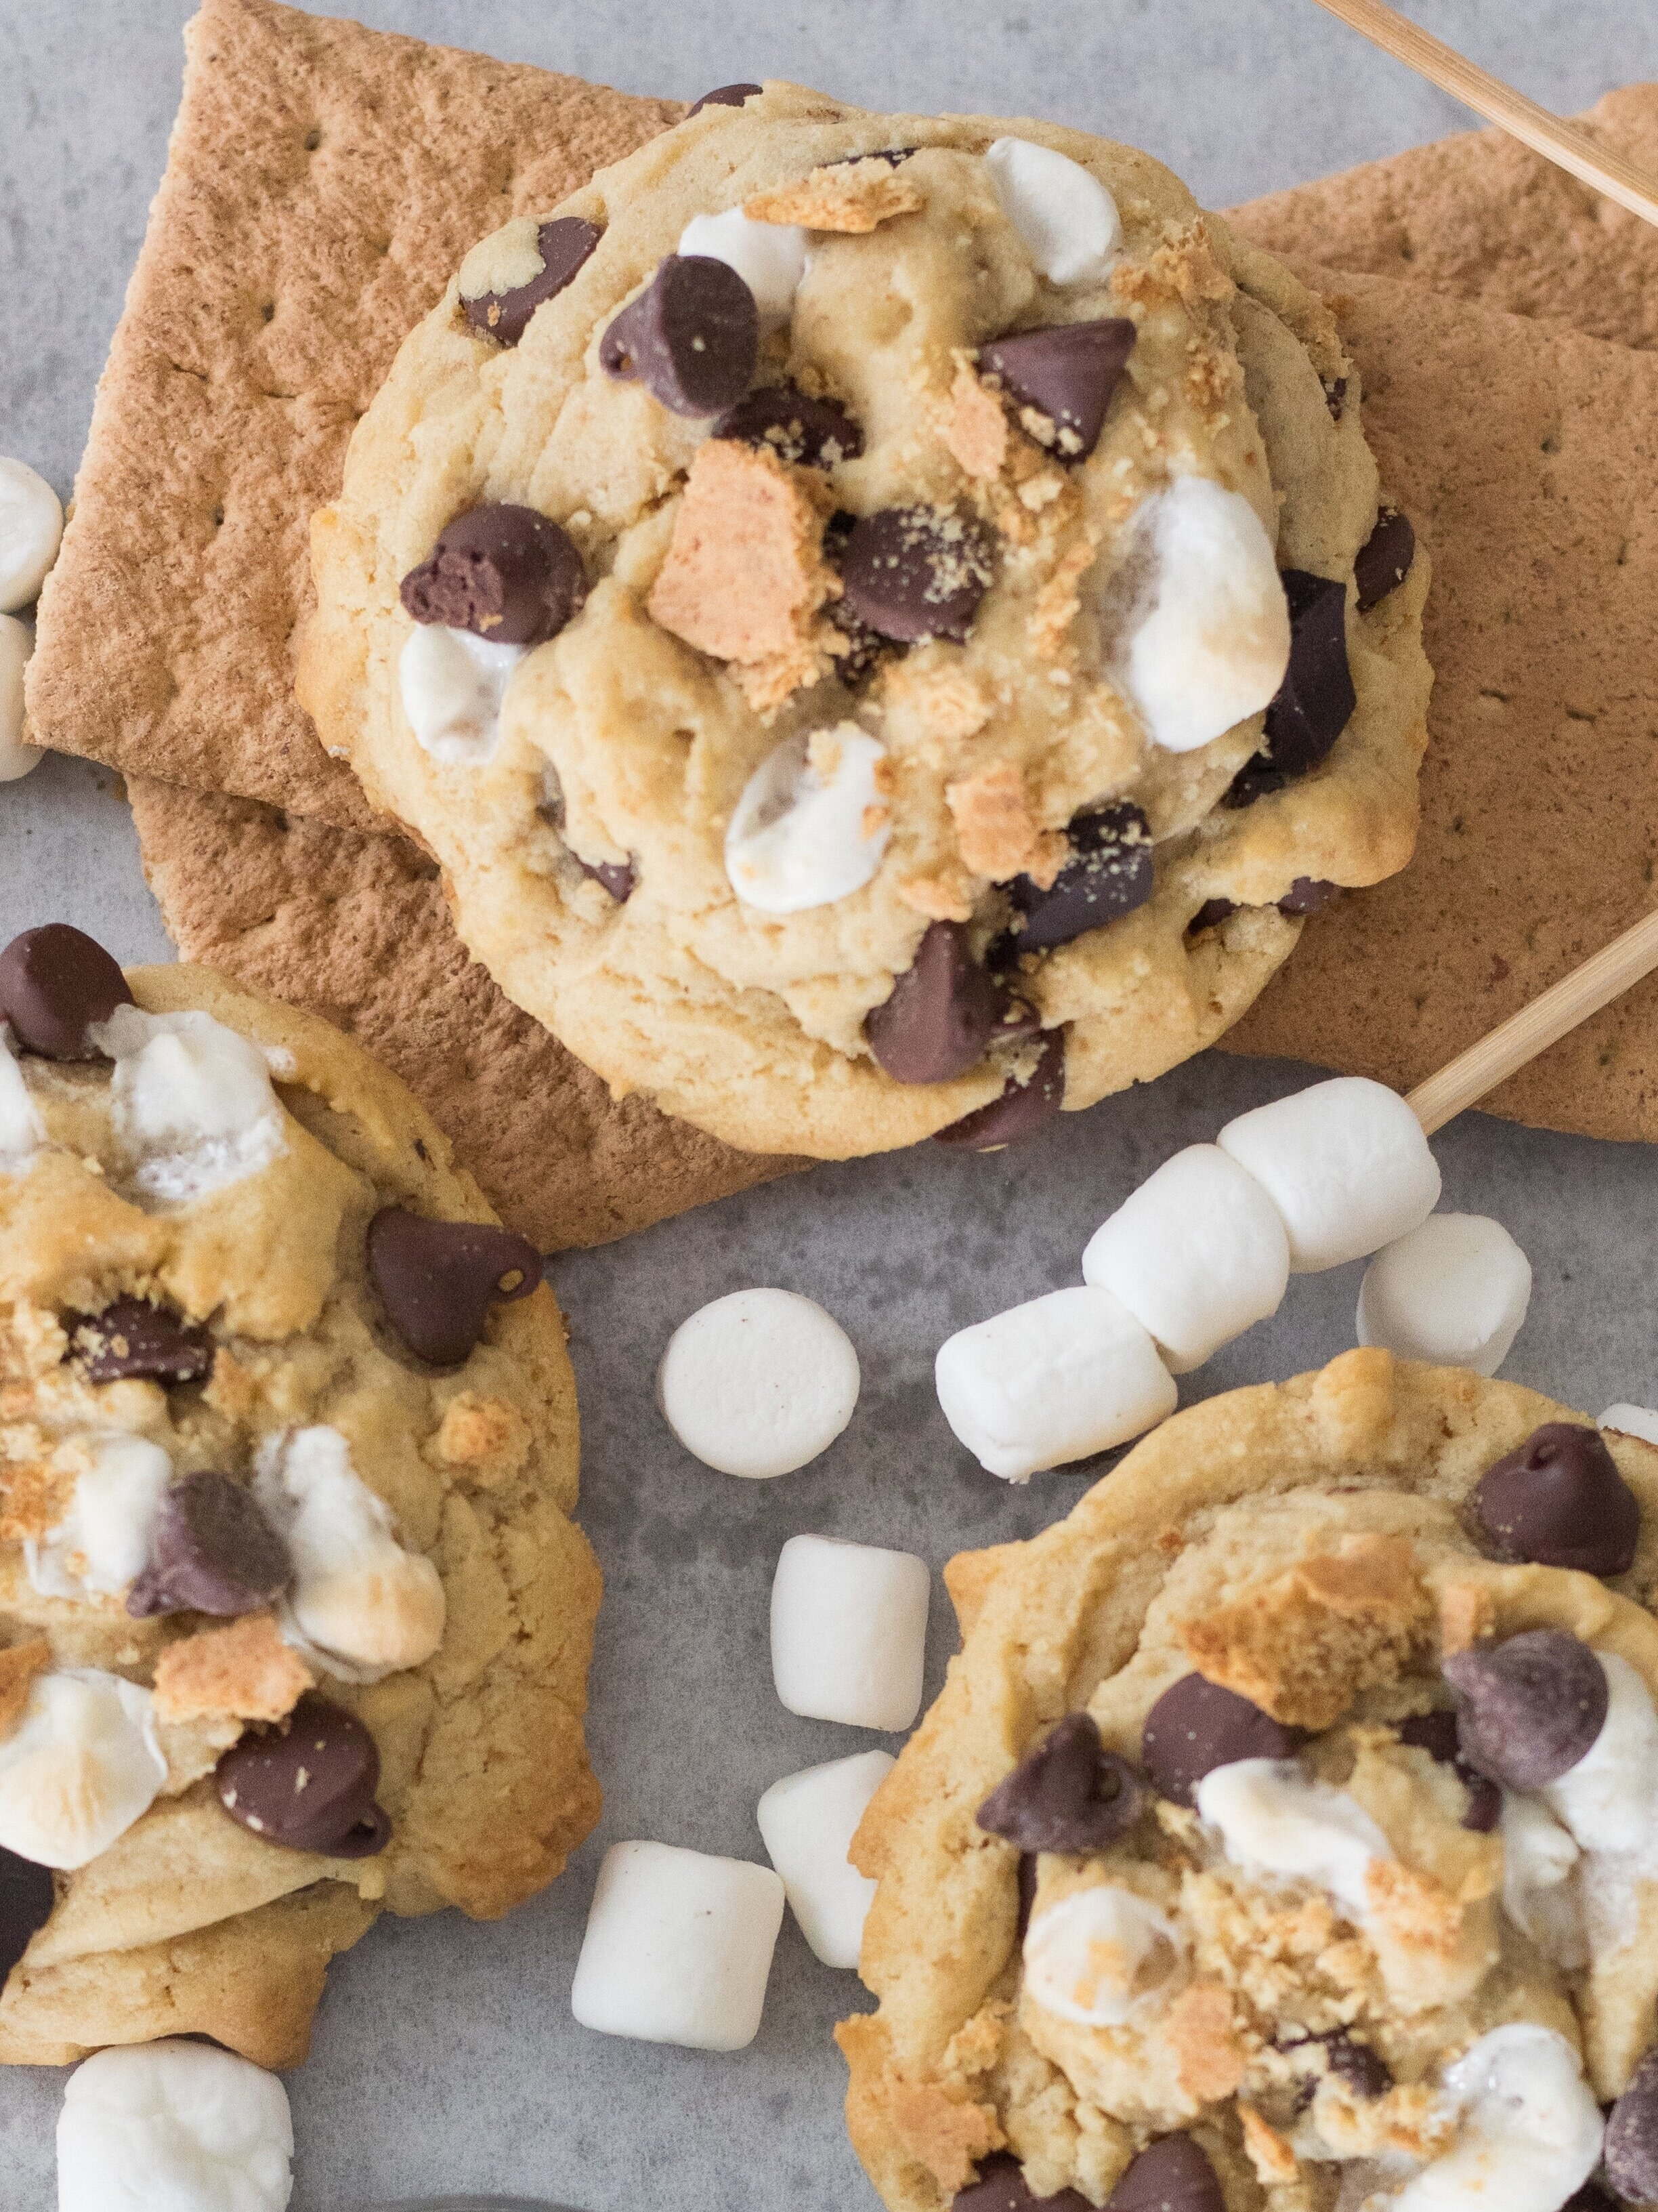 the cookies, with marshmallows strewn everywhere